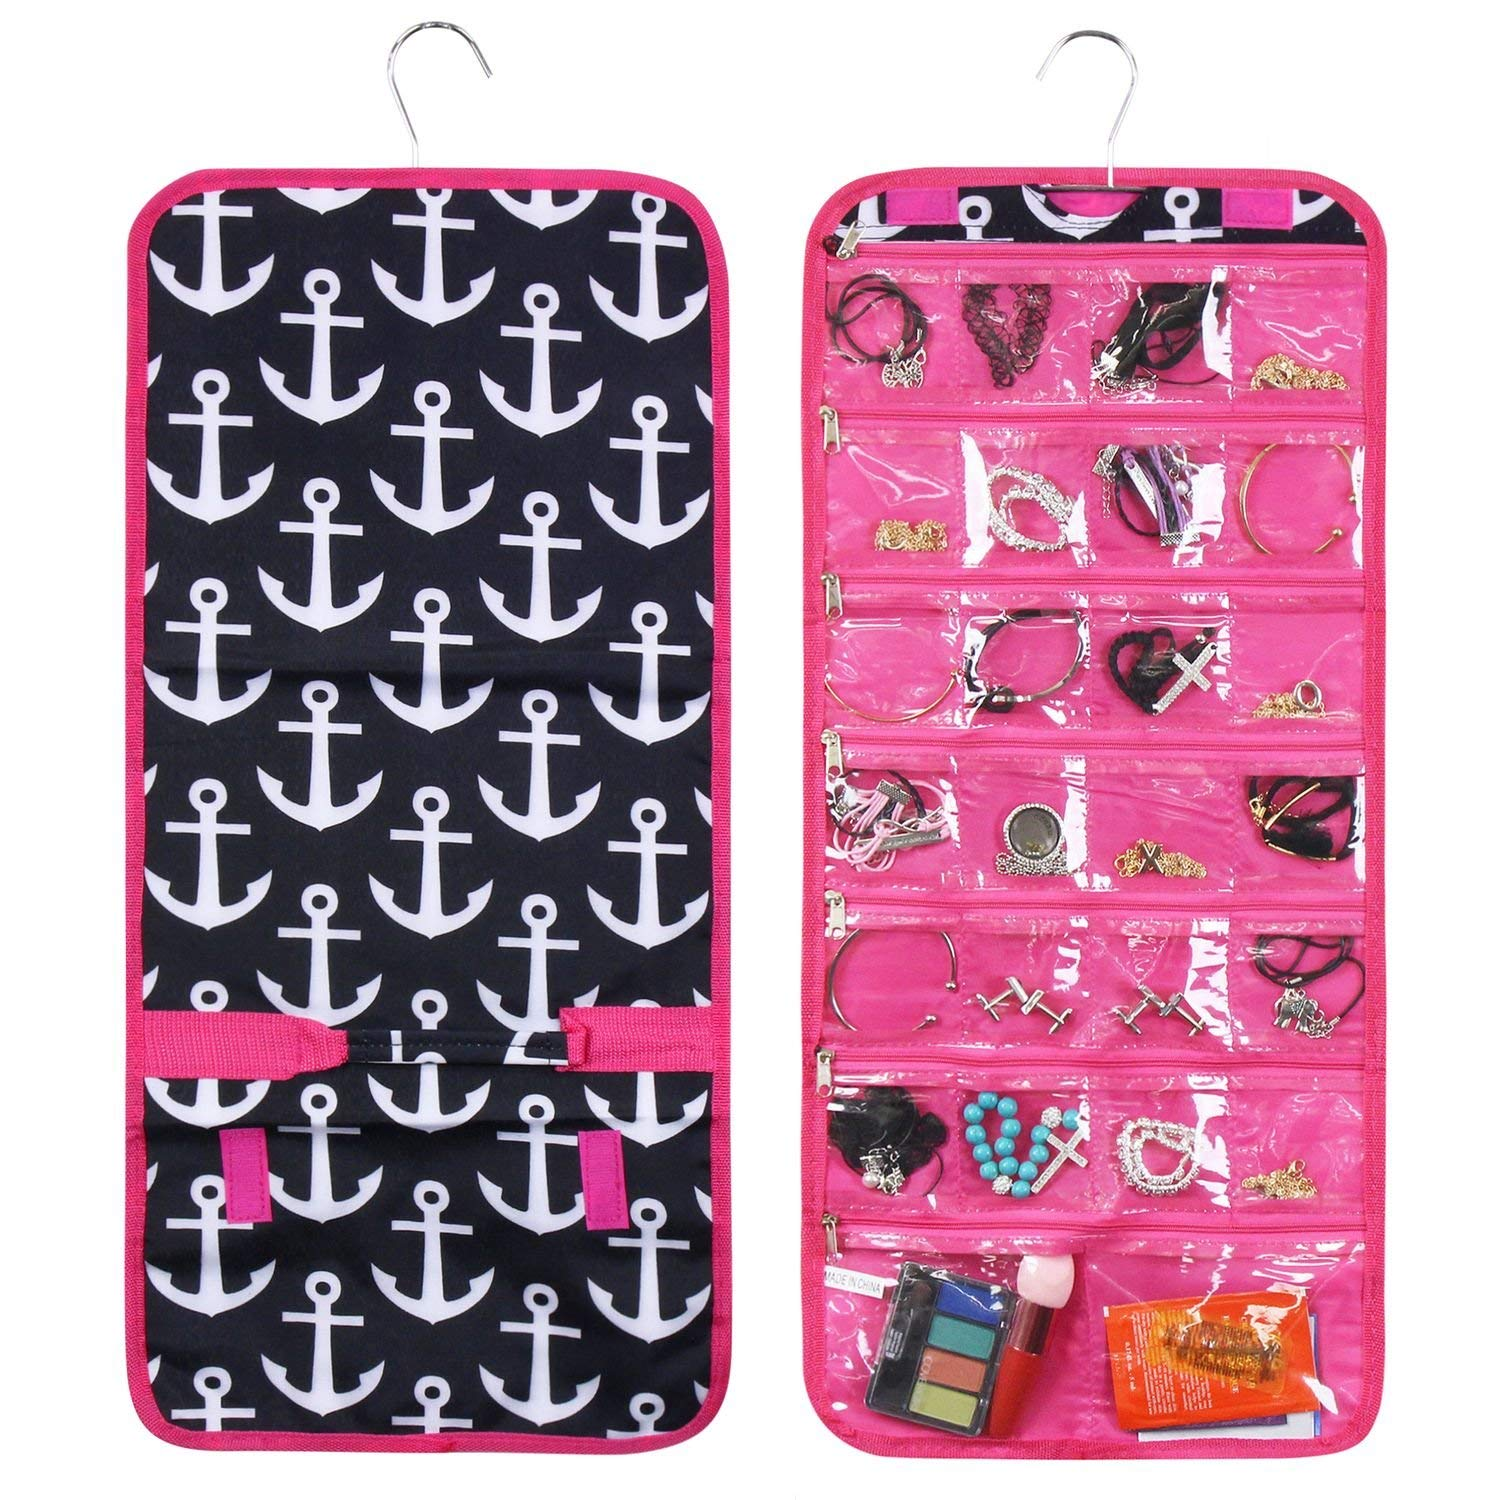 901c7dc77 Cheap Roll Up Jewelry Organizer, find Roll Up Jewelry Organizer ...